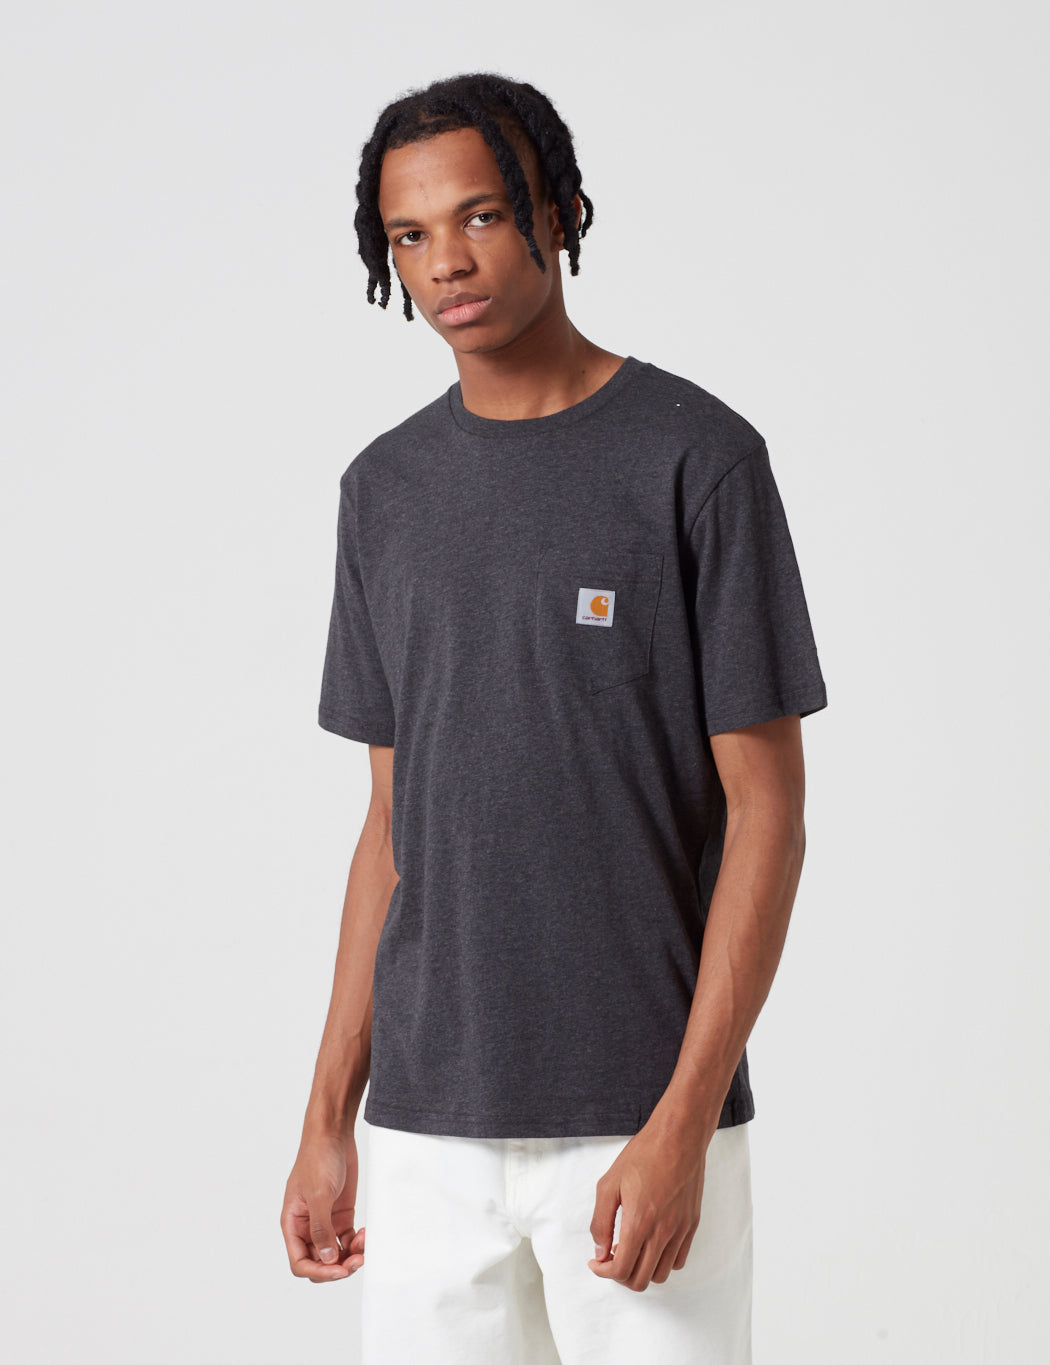 Carhartt Pocket T-Shirt - Black Heather